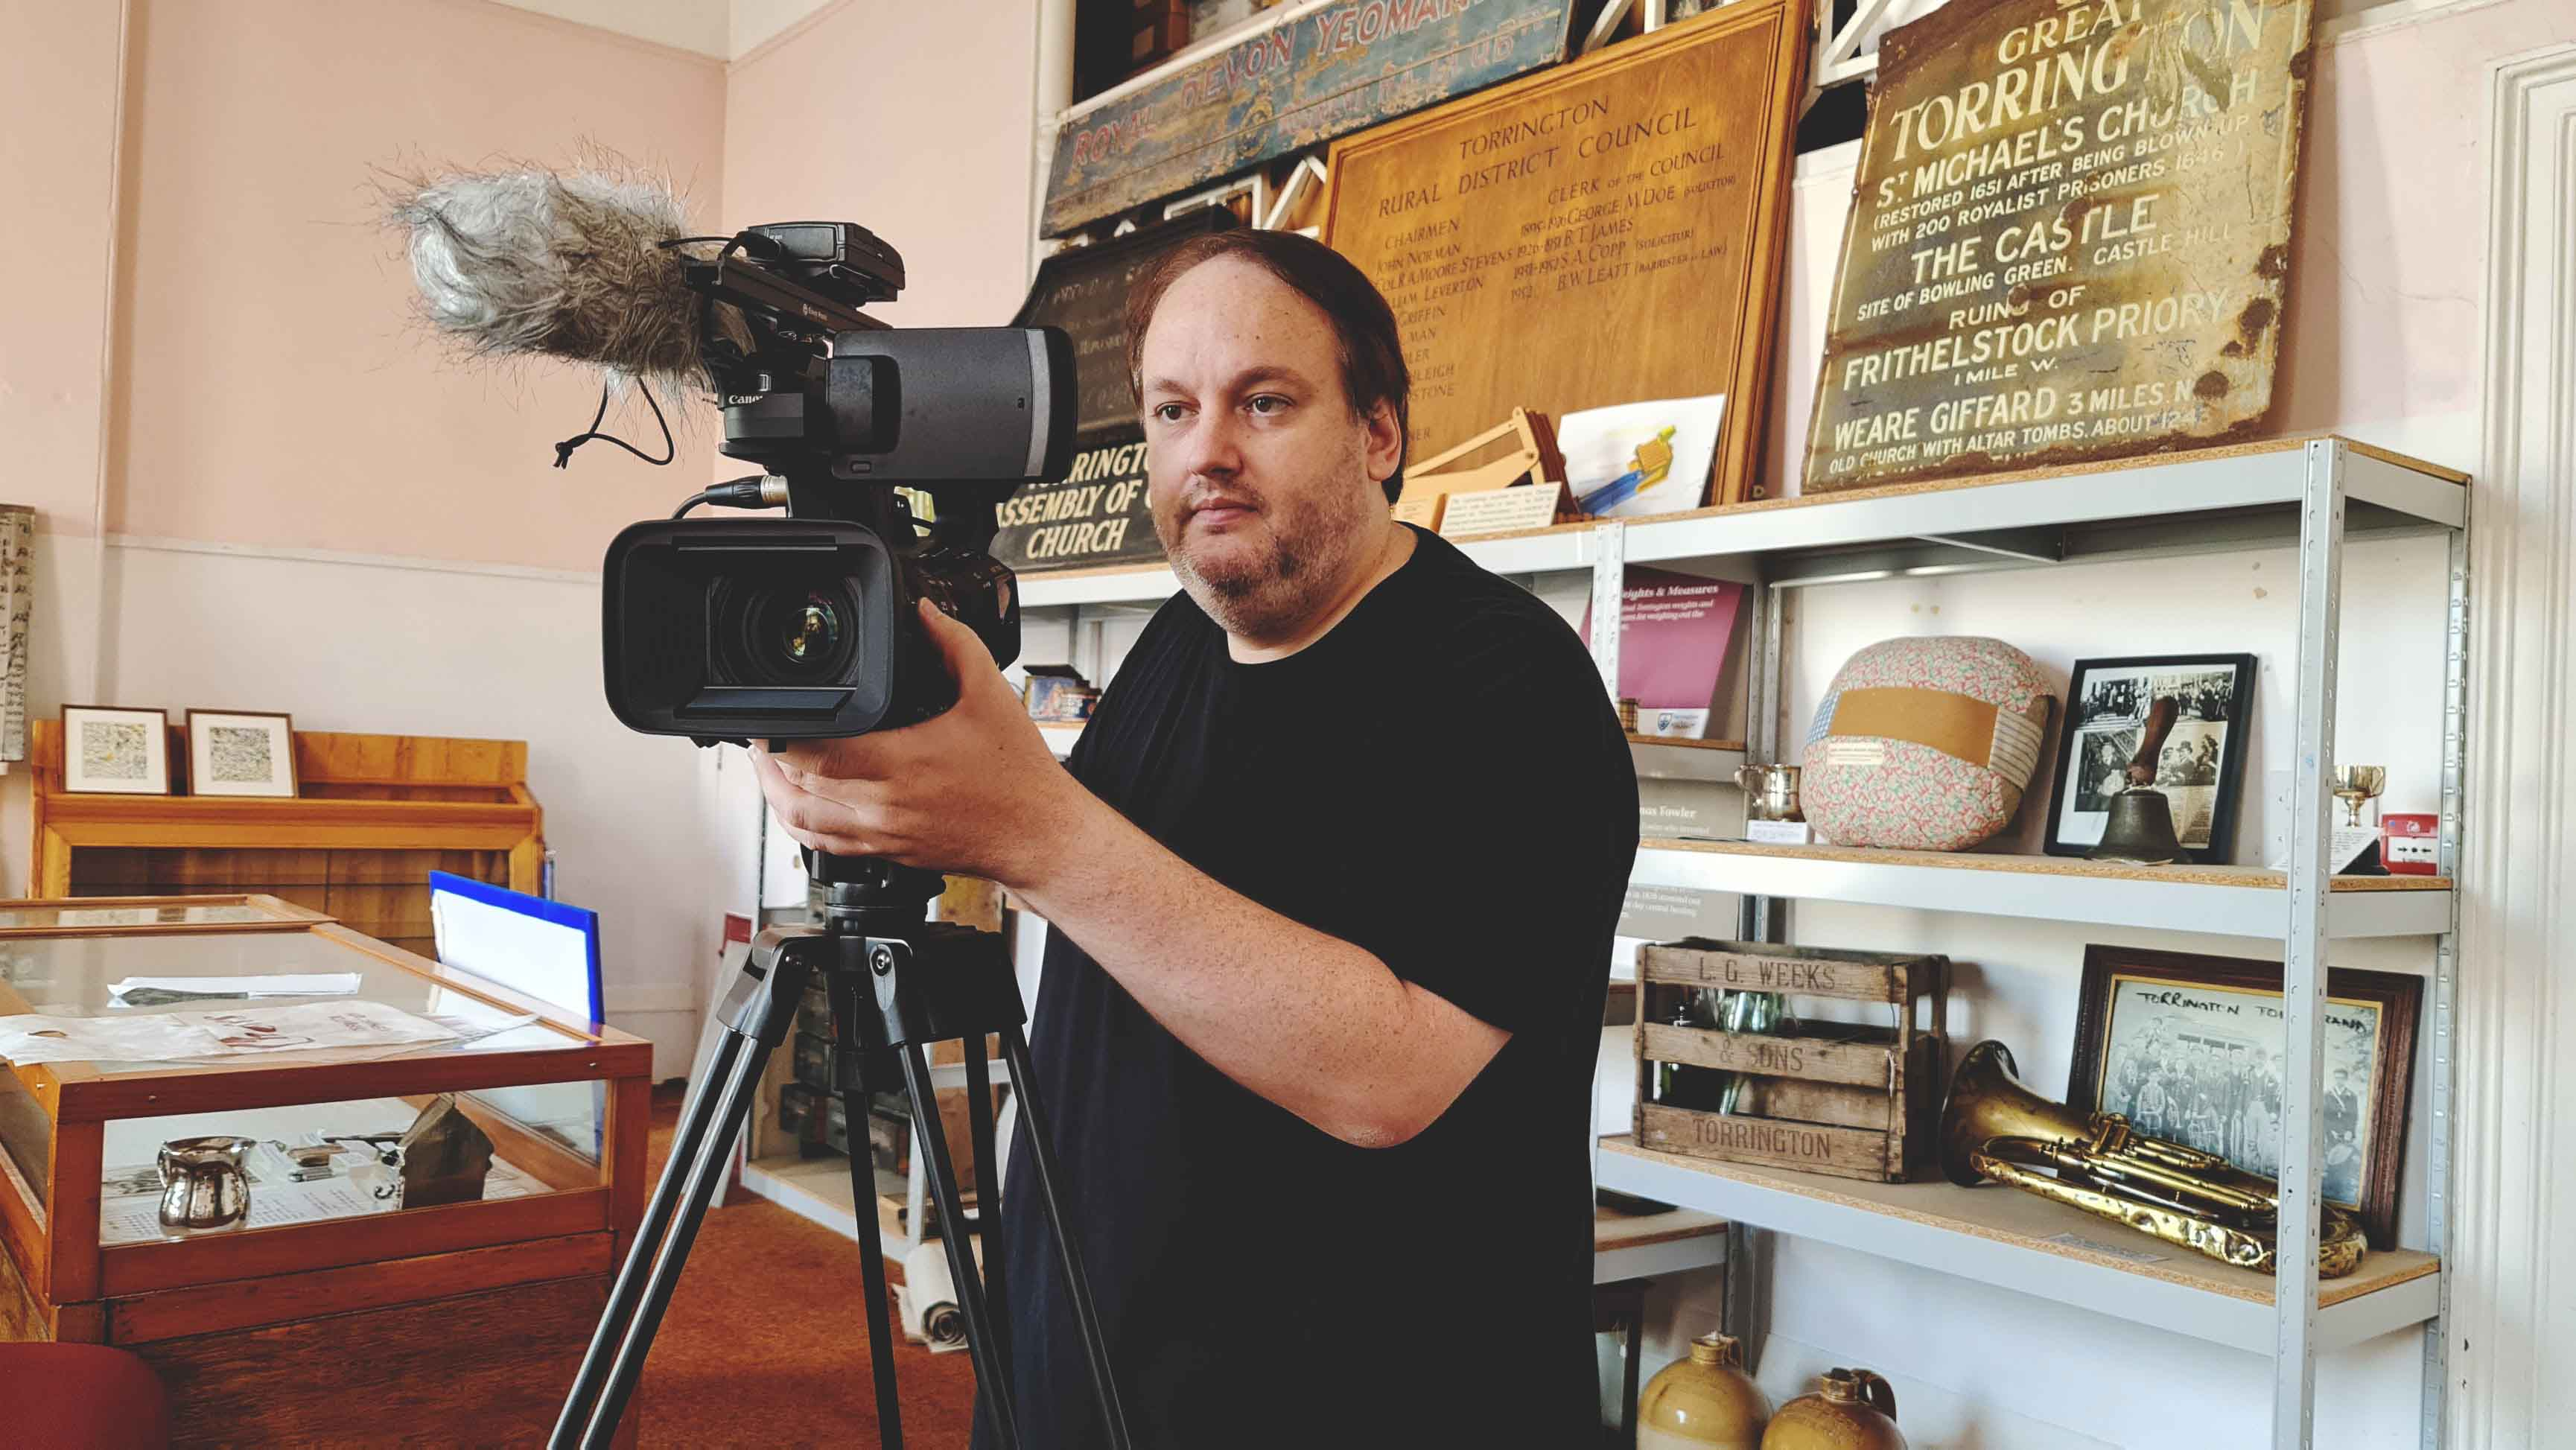 Michael Collins filming at the Torrington Museum - (C) Rebel Boy Media UK Limited 2020. All Rights Reserved